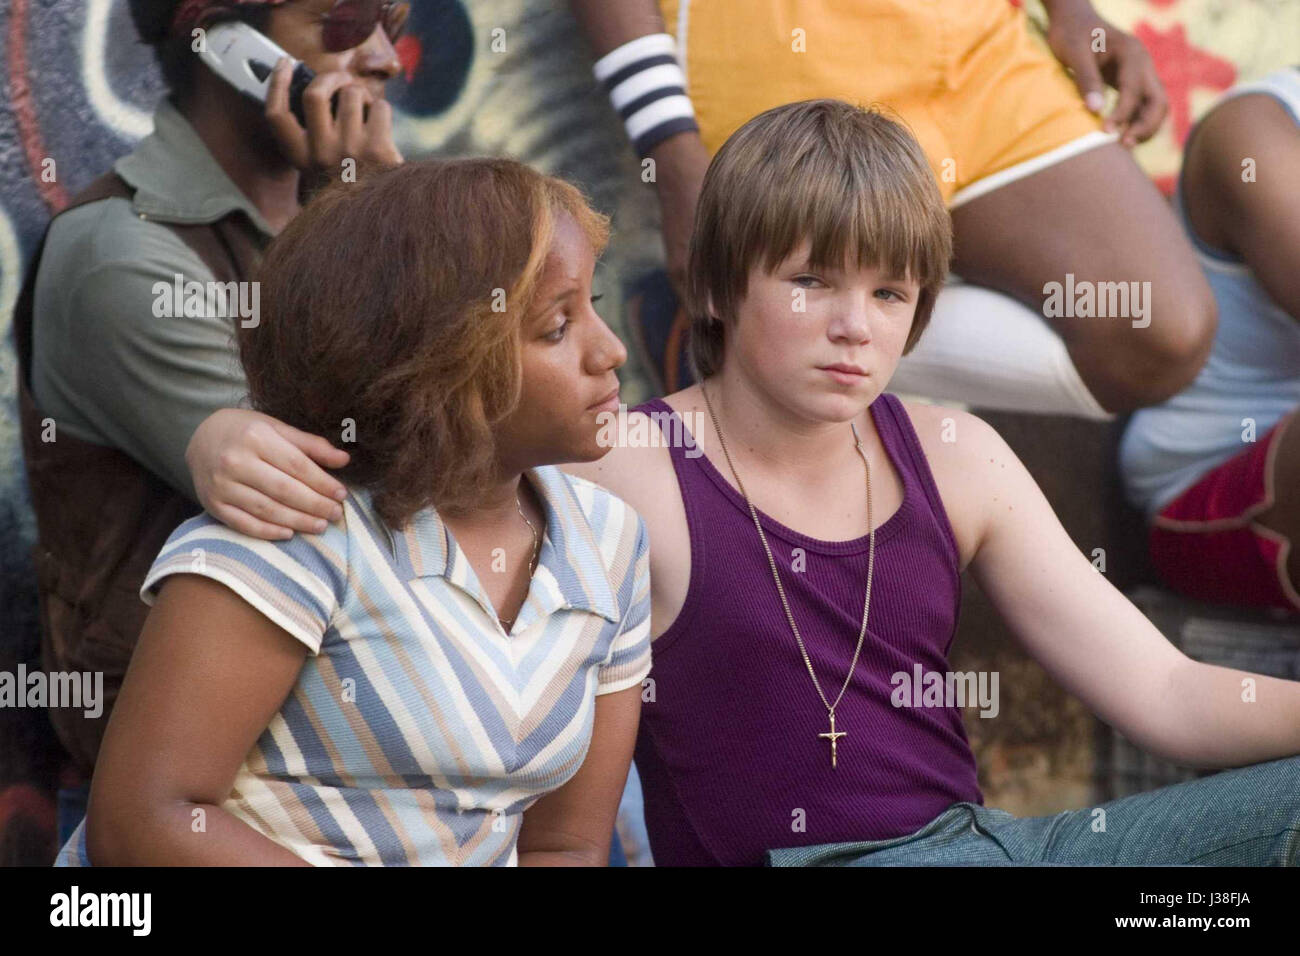 THE EDUCATION OF CHARLIE BANKS (2007)  MILES CHANDLER  FRED DURST (DIR)  ANCHOR BAY ENTERTAINMENT/MOVIESTORE COLLECTION Stock Photo